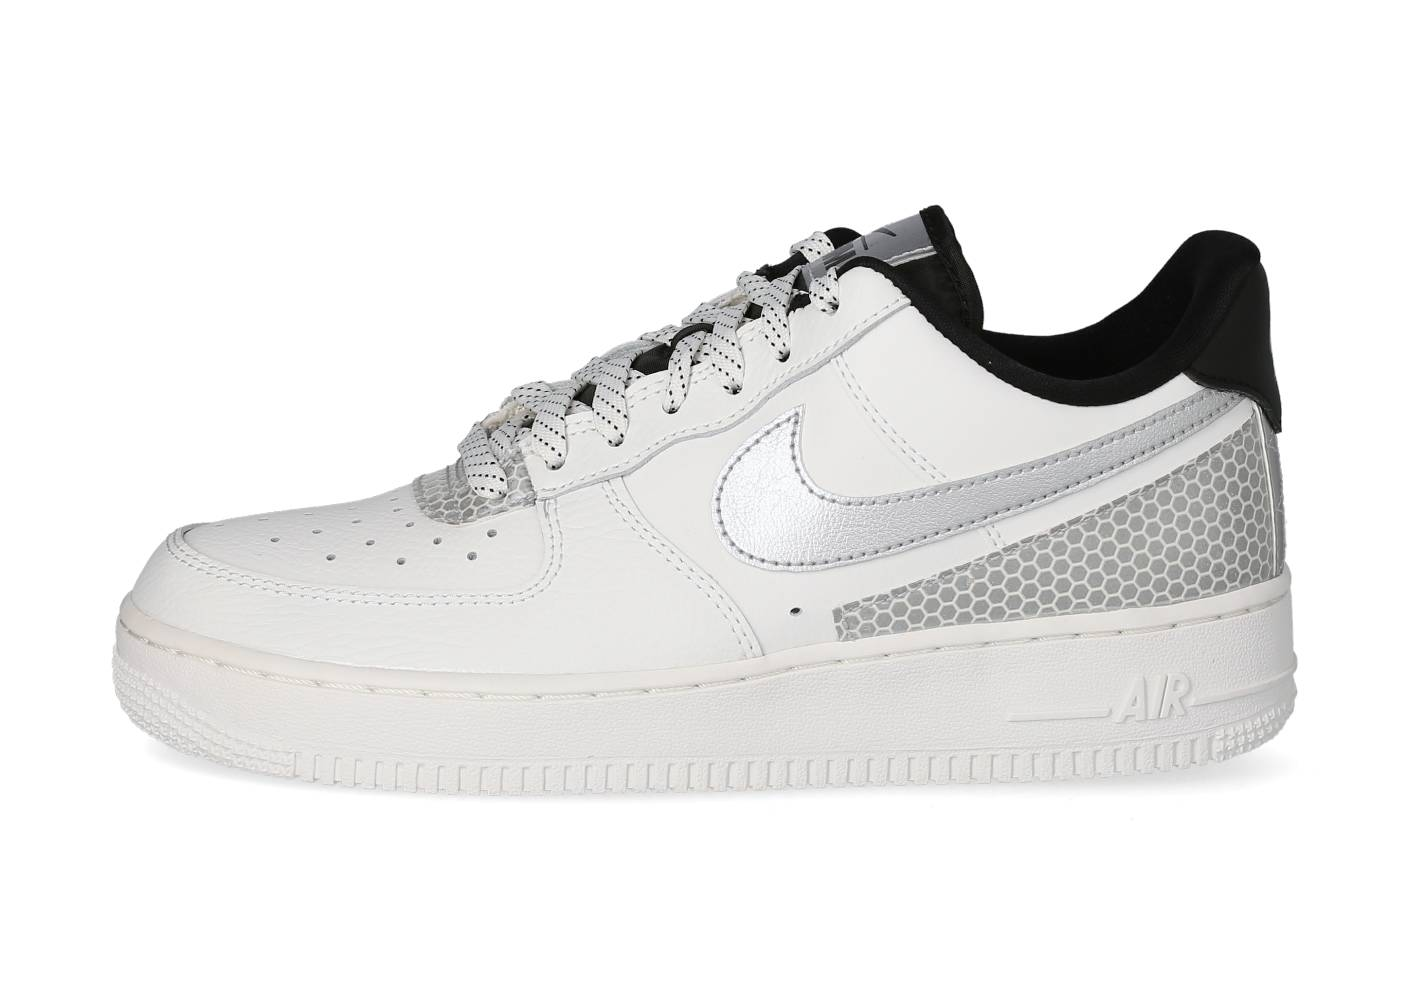 Nike Homme Air Force 1 Lv8 3m Blanche Baskets 46